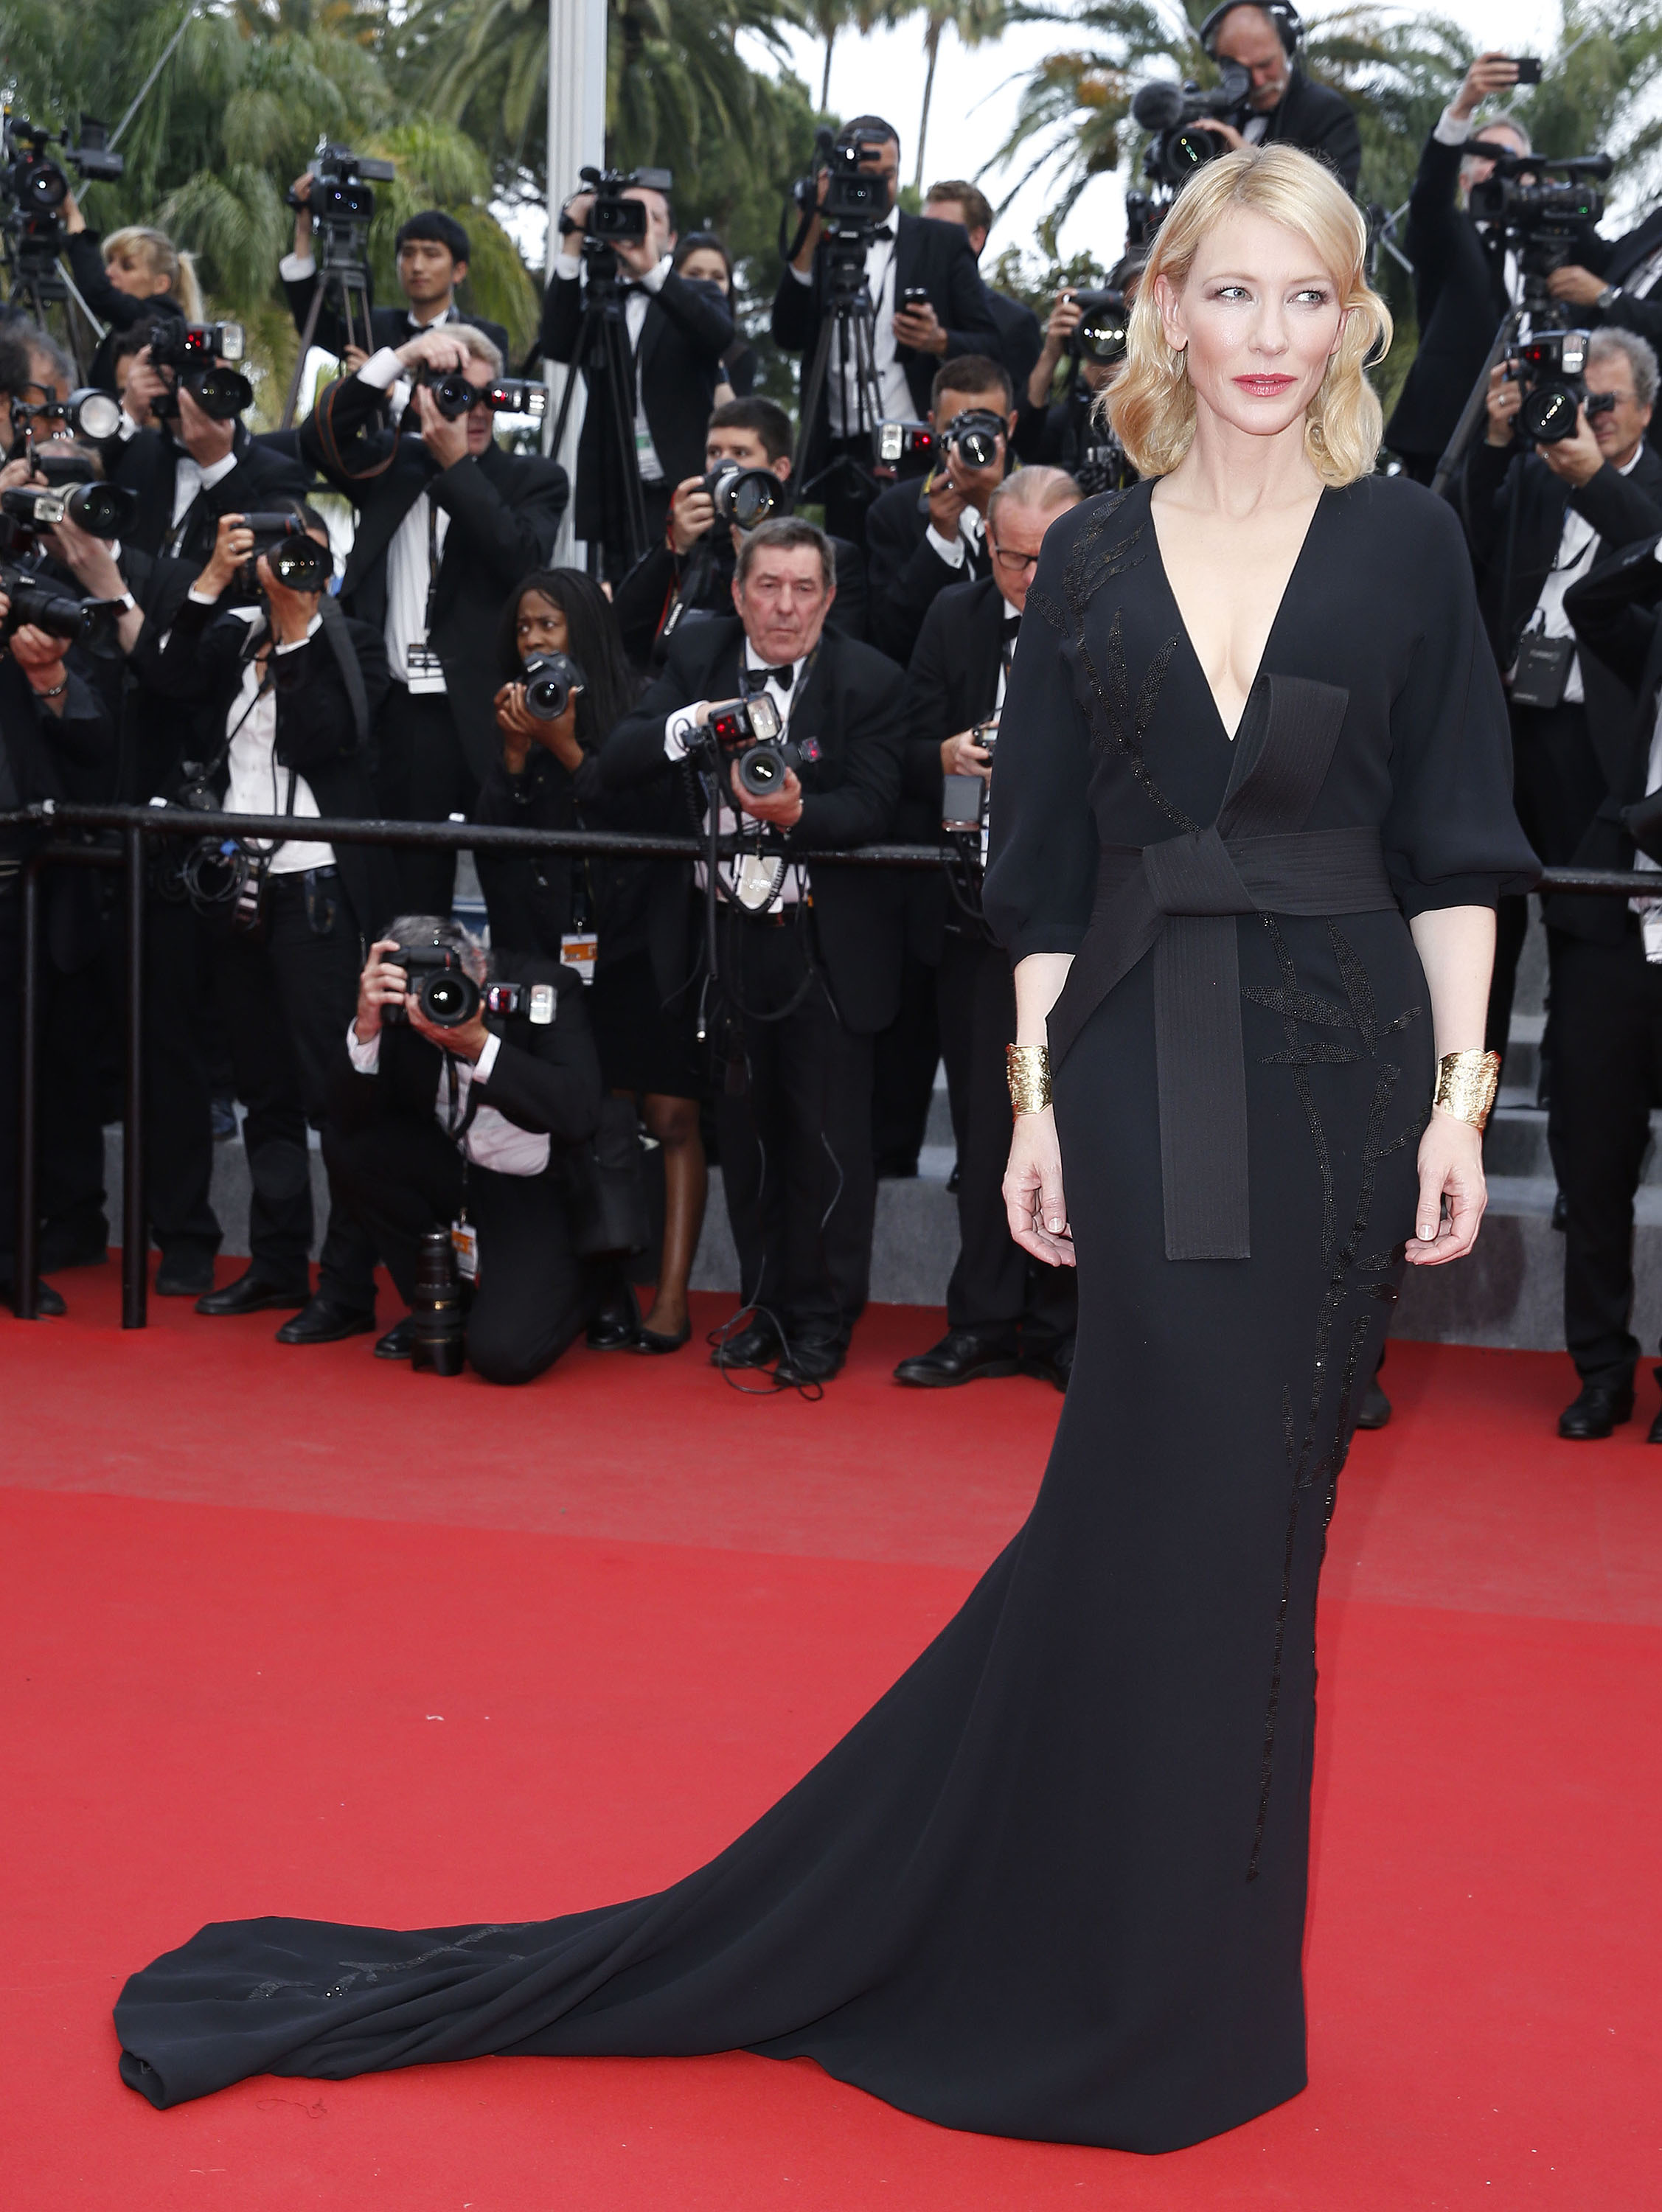 Cannes Fugs and Fabs: The Rest of the Sicario Premiere